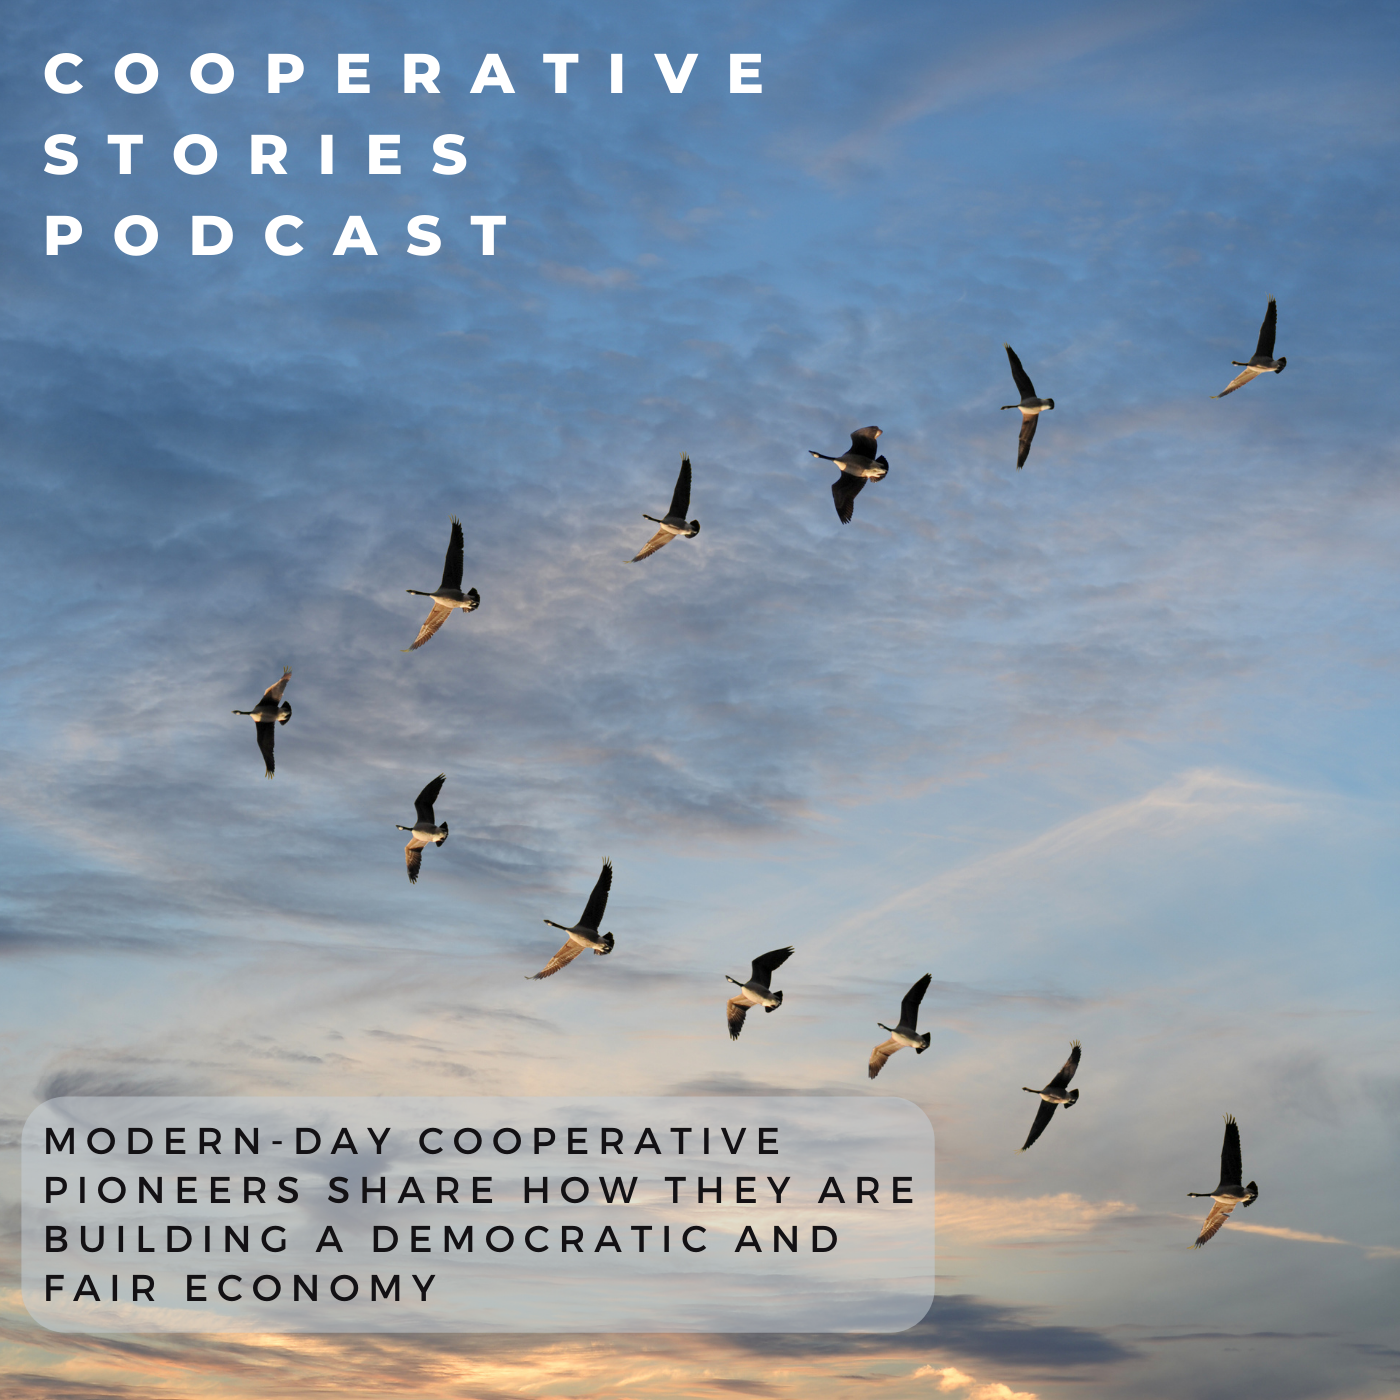 Cooperative Stories podcast